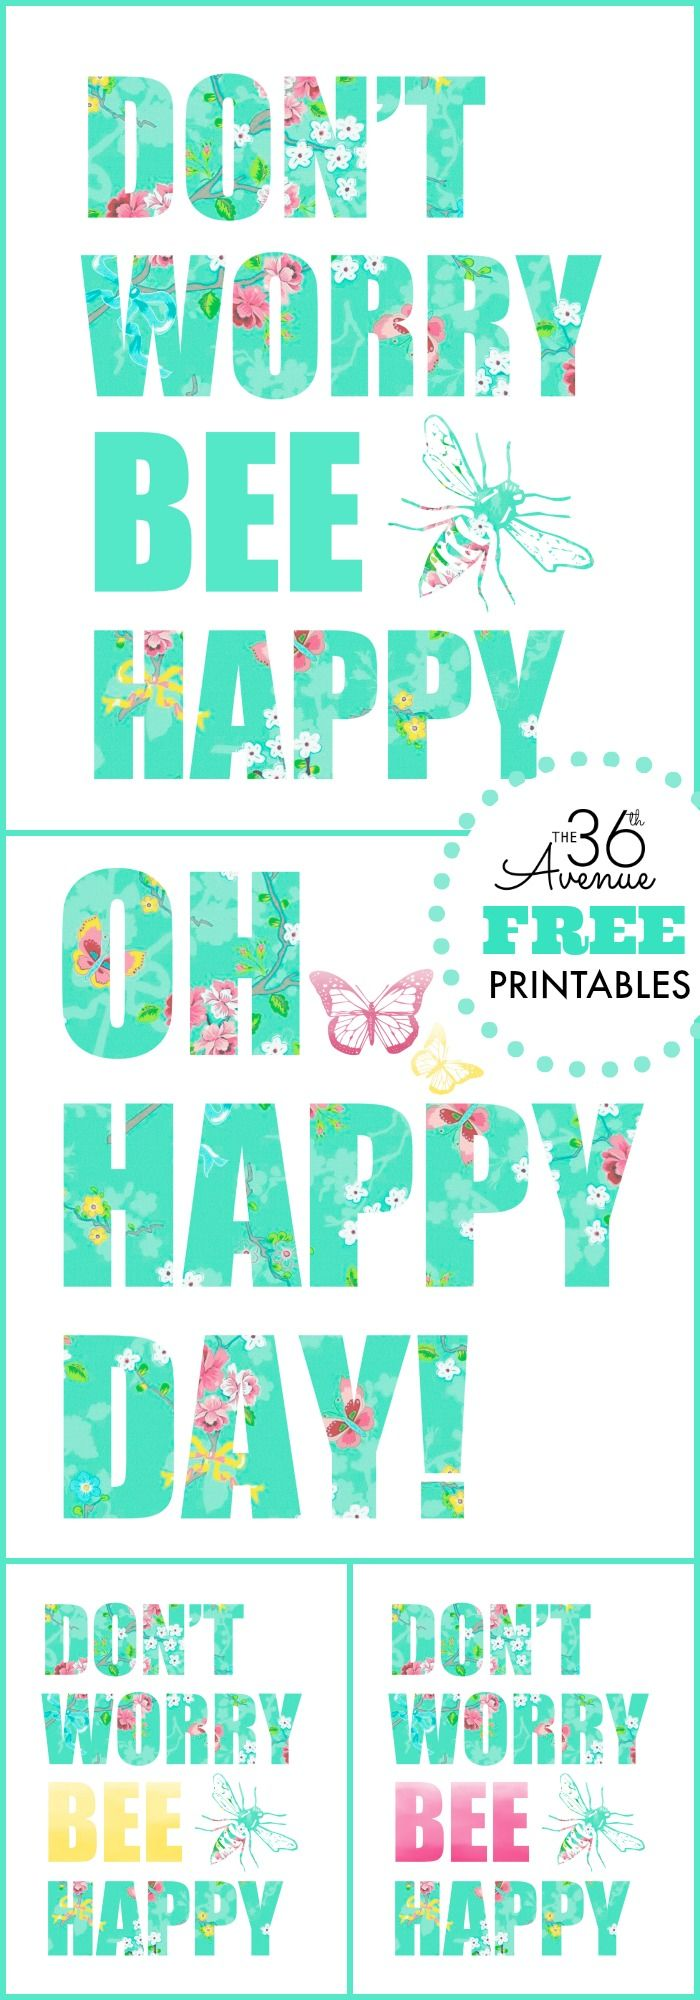 Free Printables - More colors at the36thavenue.com